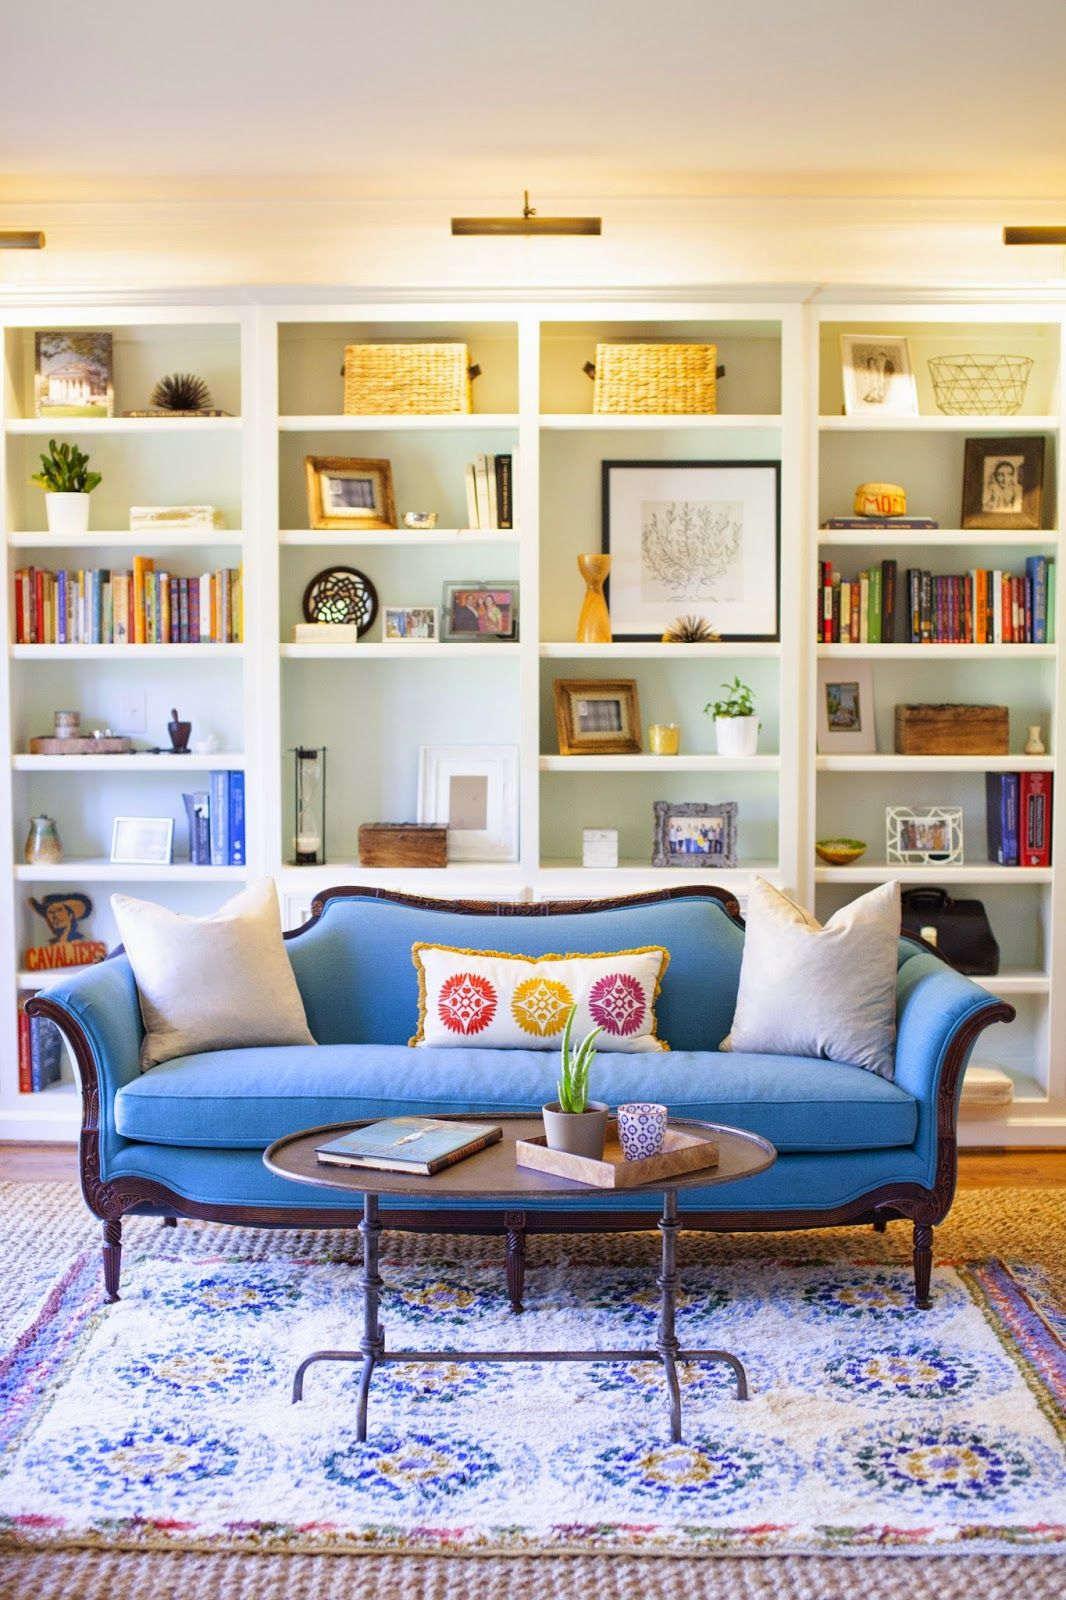 Make A Living Room A Library: Reupholstered Thrifted Blue Sofa, Layered Rugs, Painted